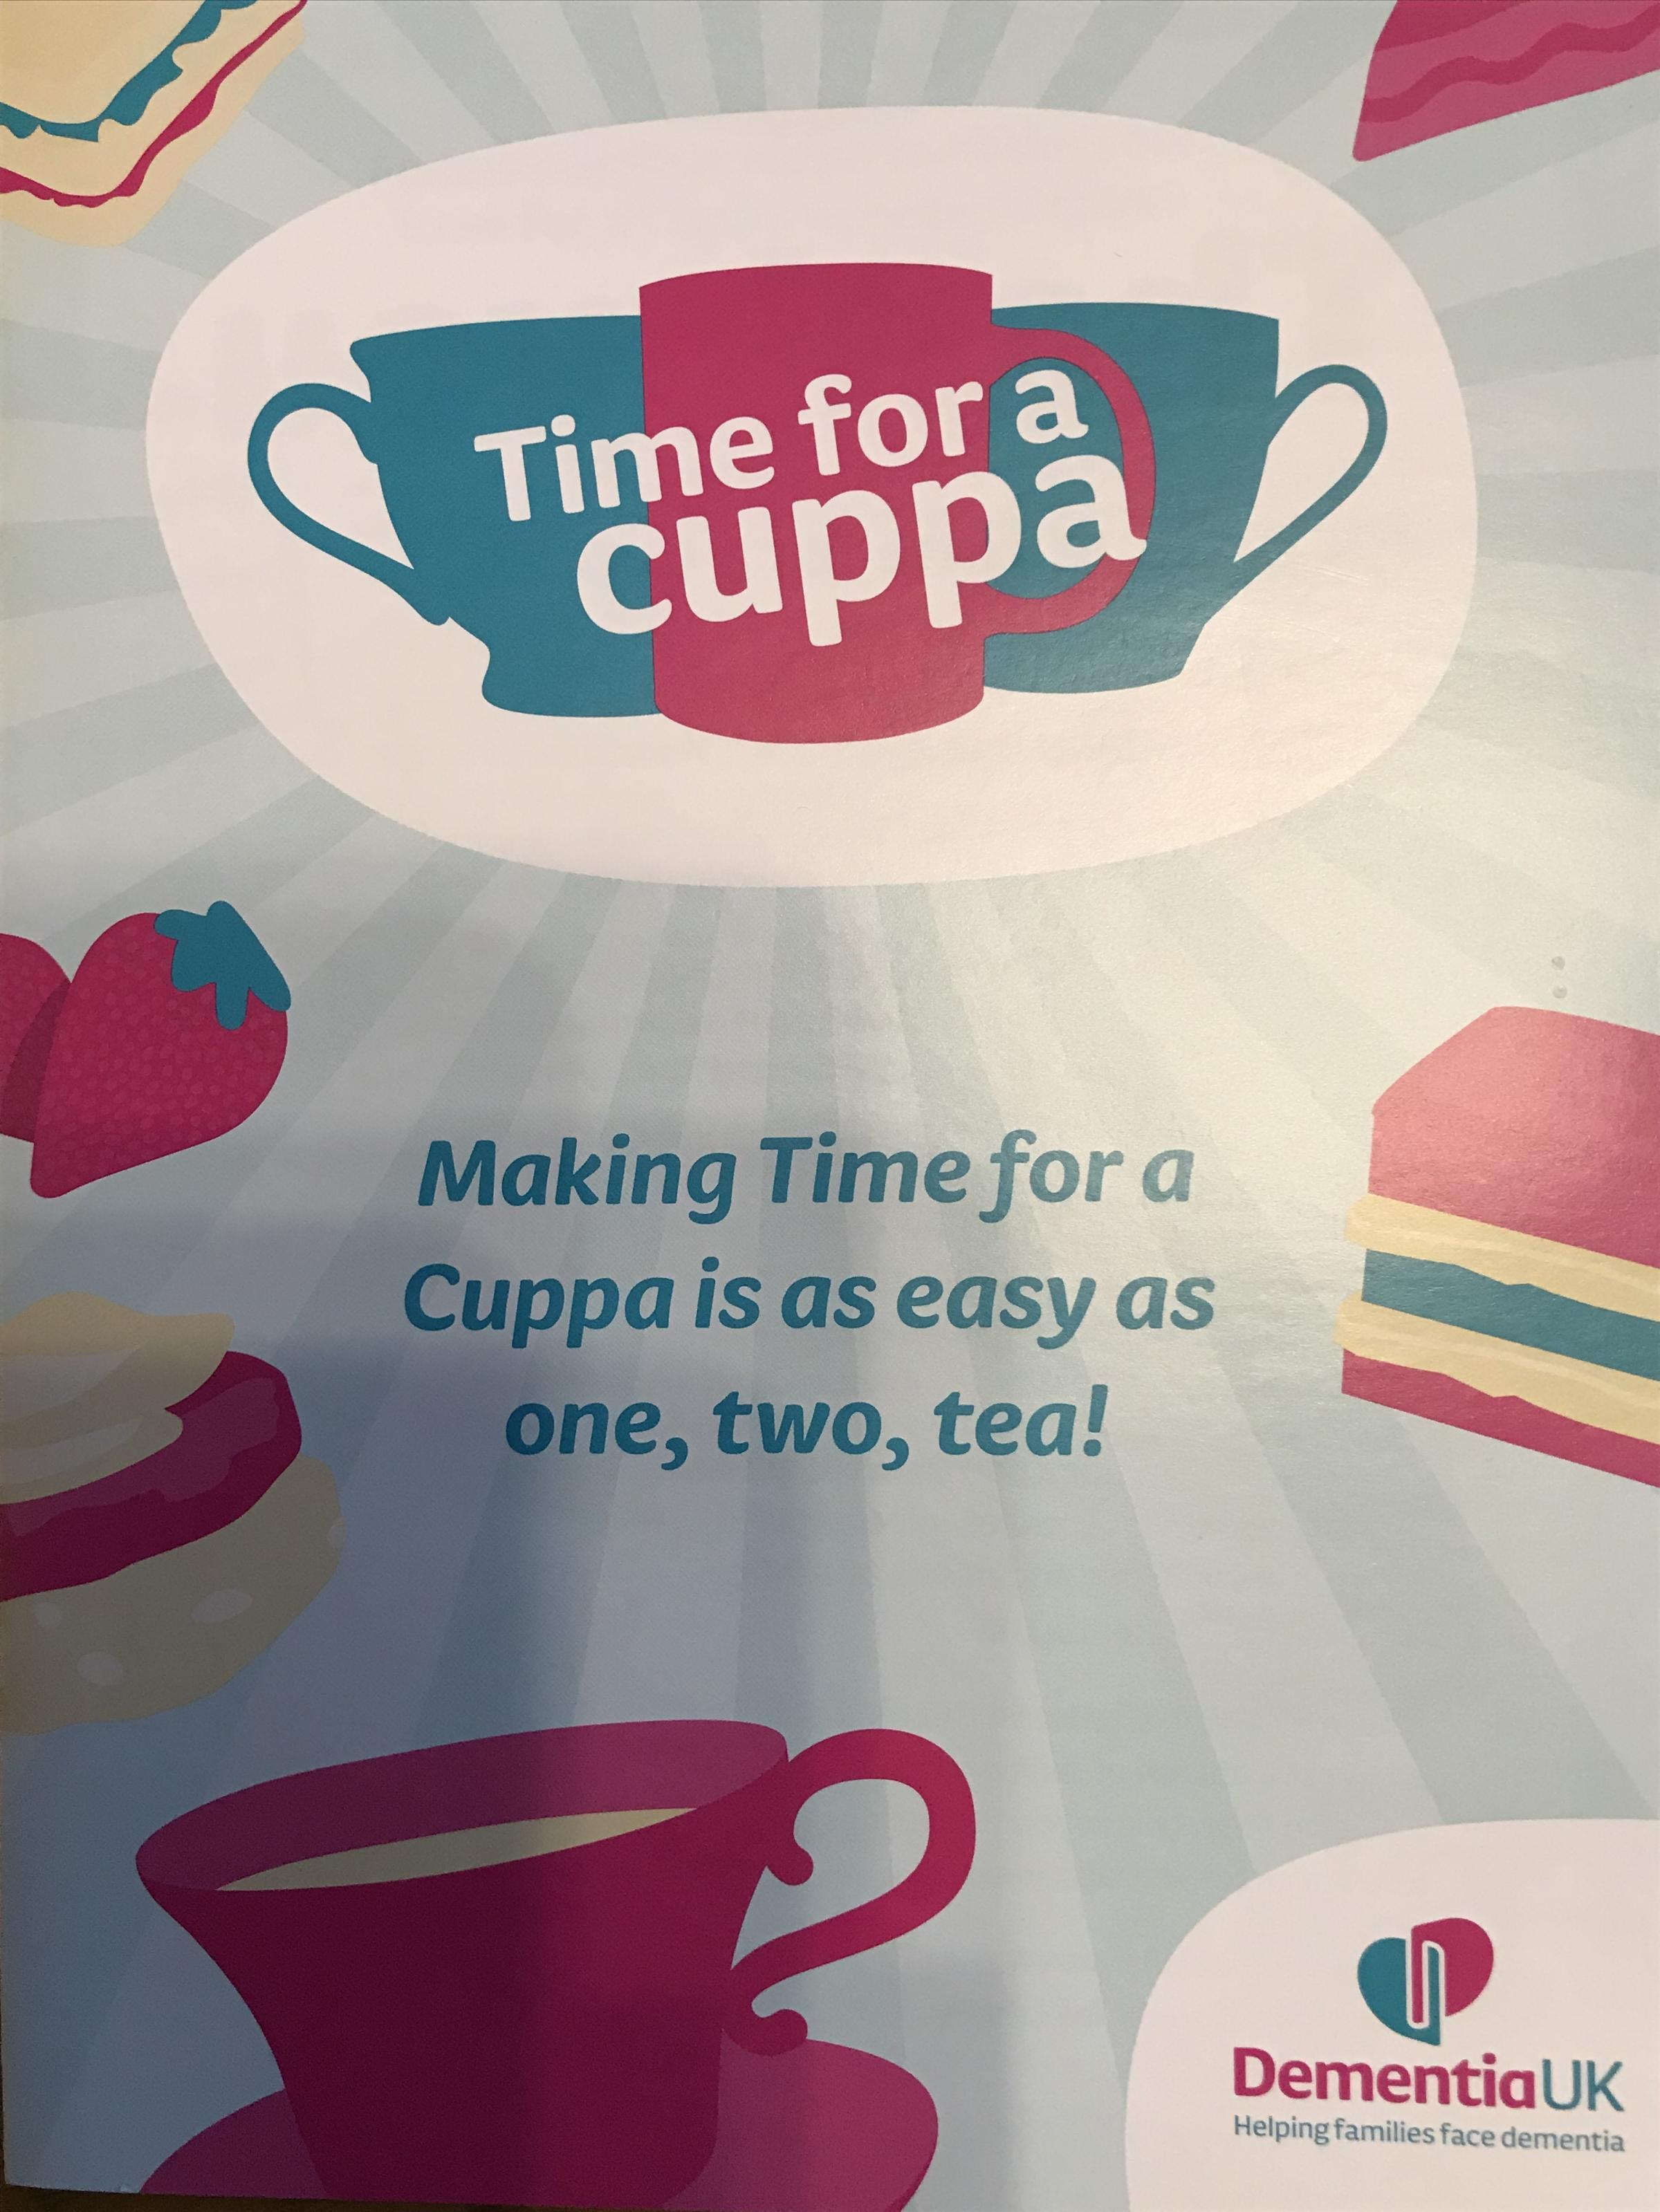 Dementia UK 'Time for a Cuppa' fundraiser